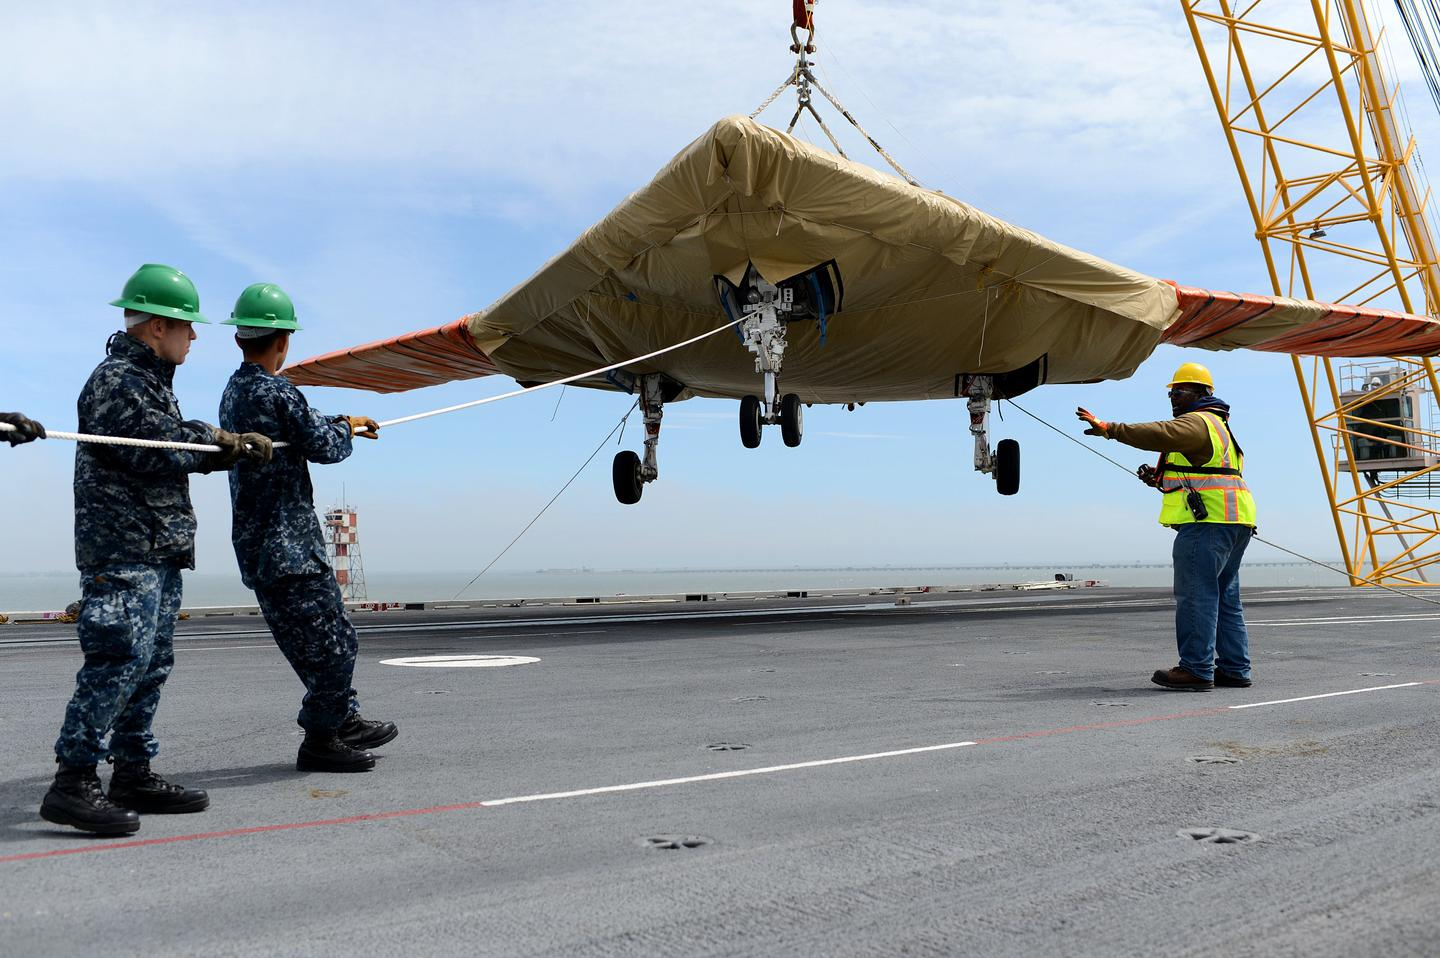 An X-47B Unmanned Combat Air System (UCAS) demonstrator is loaded onto the flight deck of the aircraft carrier USS George H.W. Bush (CVN 77) (Photo: US. Navy/Mass Communication Specialist 2nd Class Tony D. Curtis)